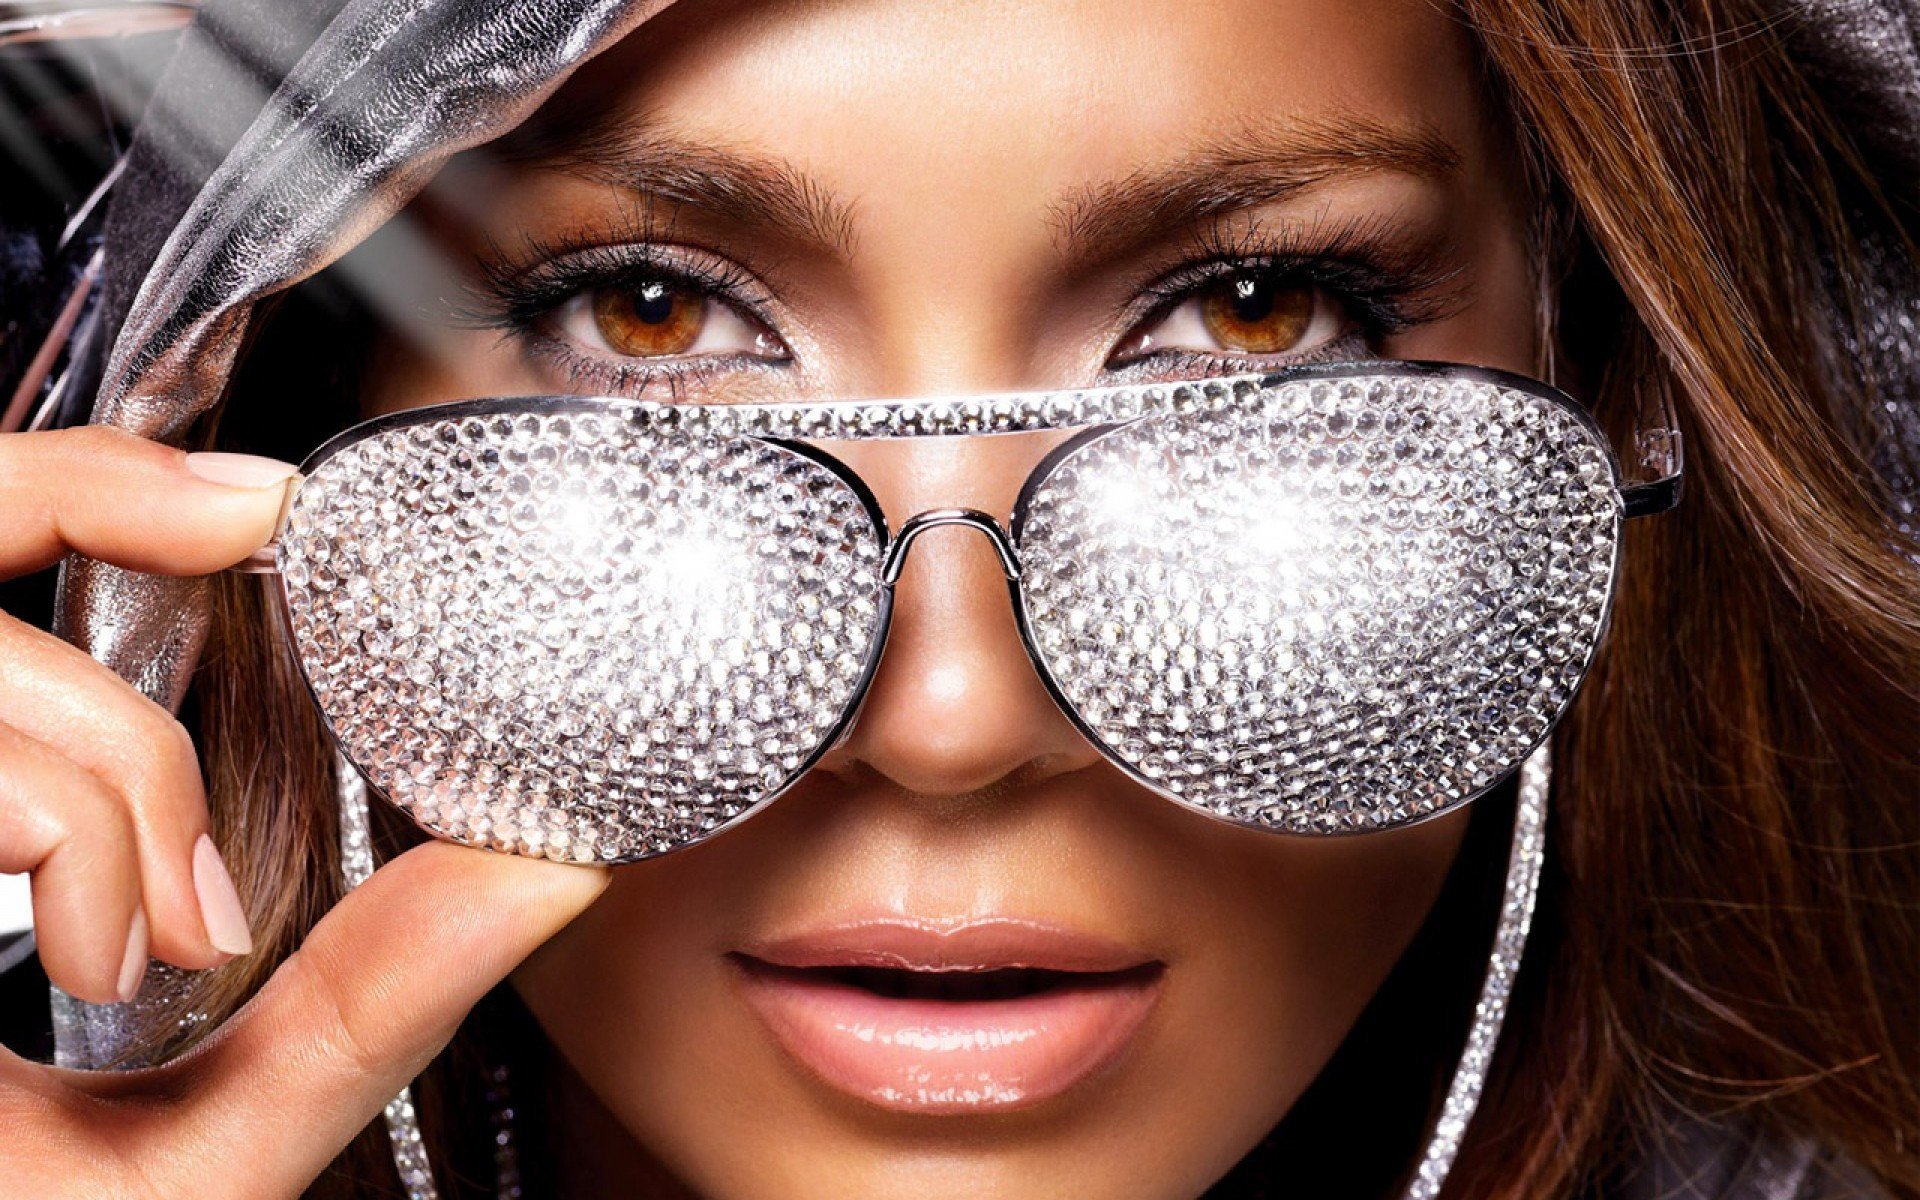 Women Brown Eyes Jennifer Lopez Sunglasses Singers Faces